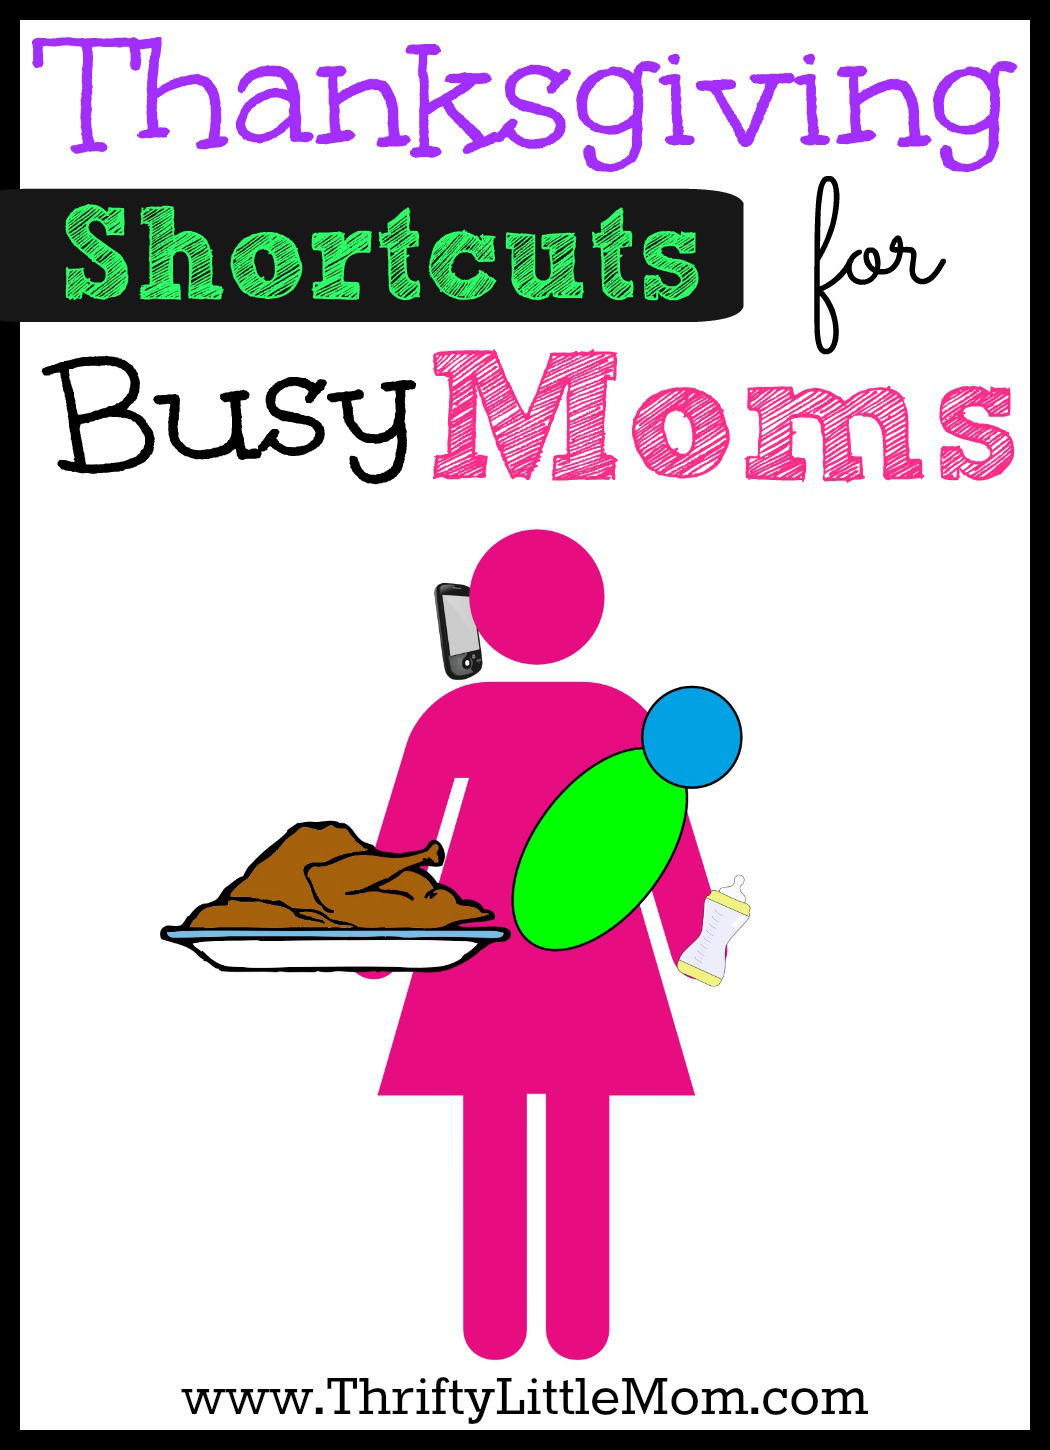 Thanksgiving Short-cuts for busy moms who are trying to survive and thrive during the holiday season.